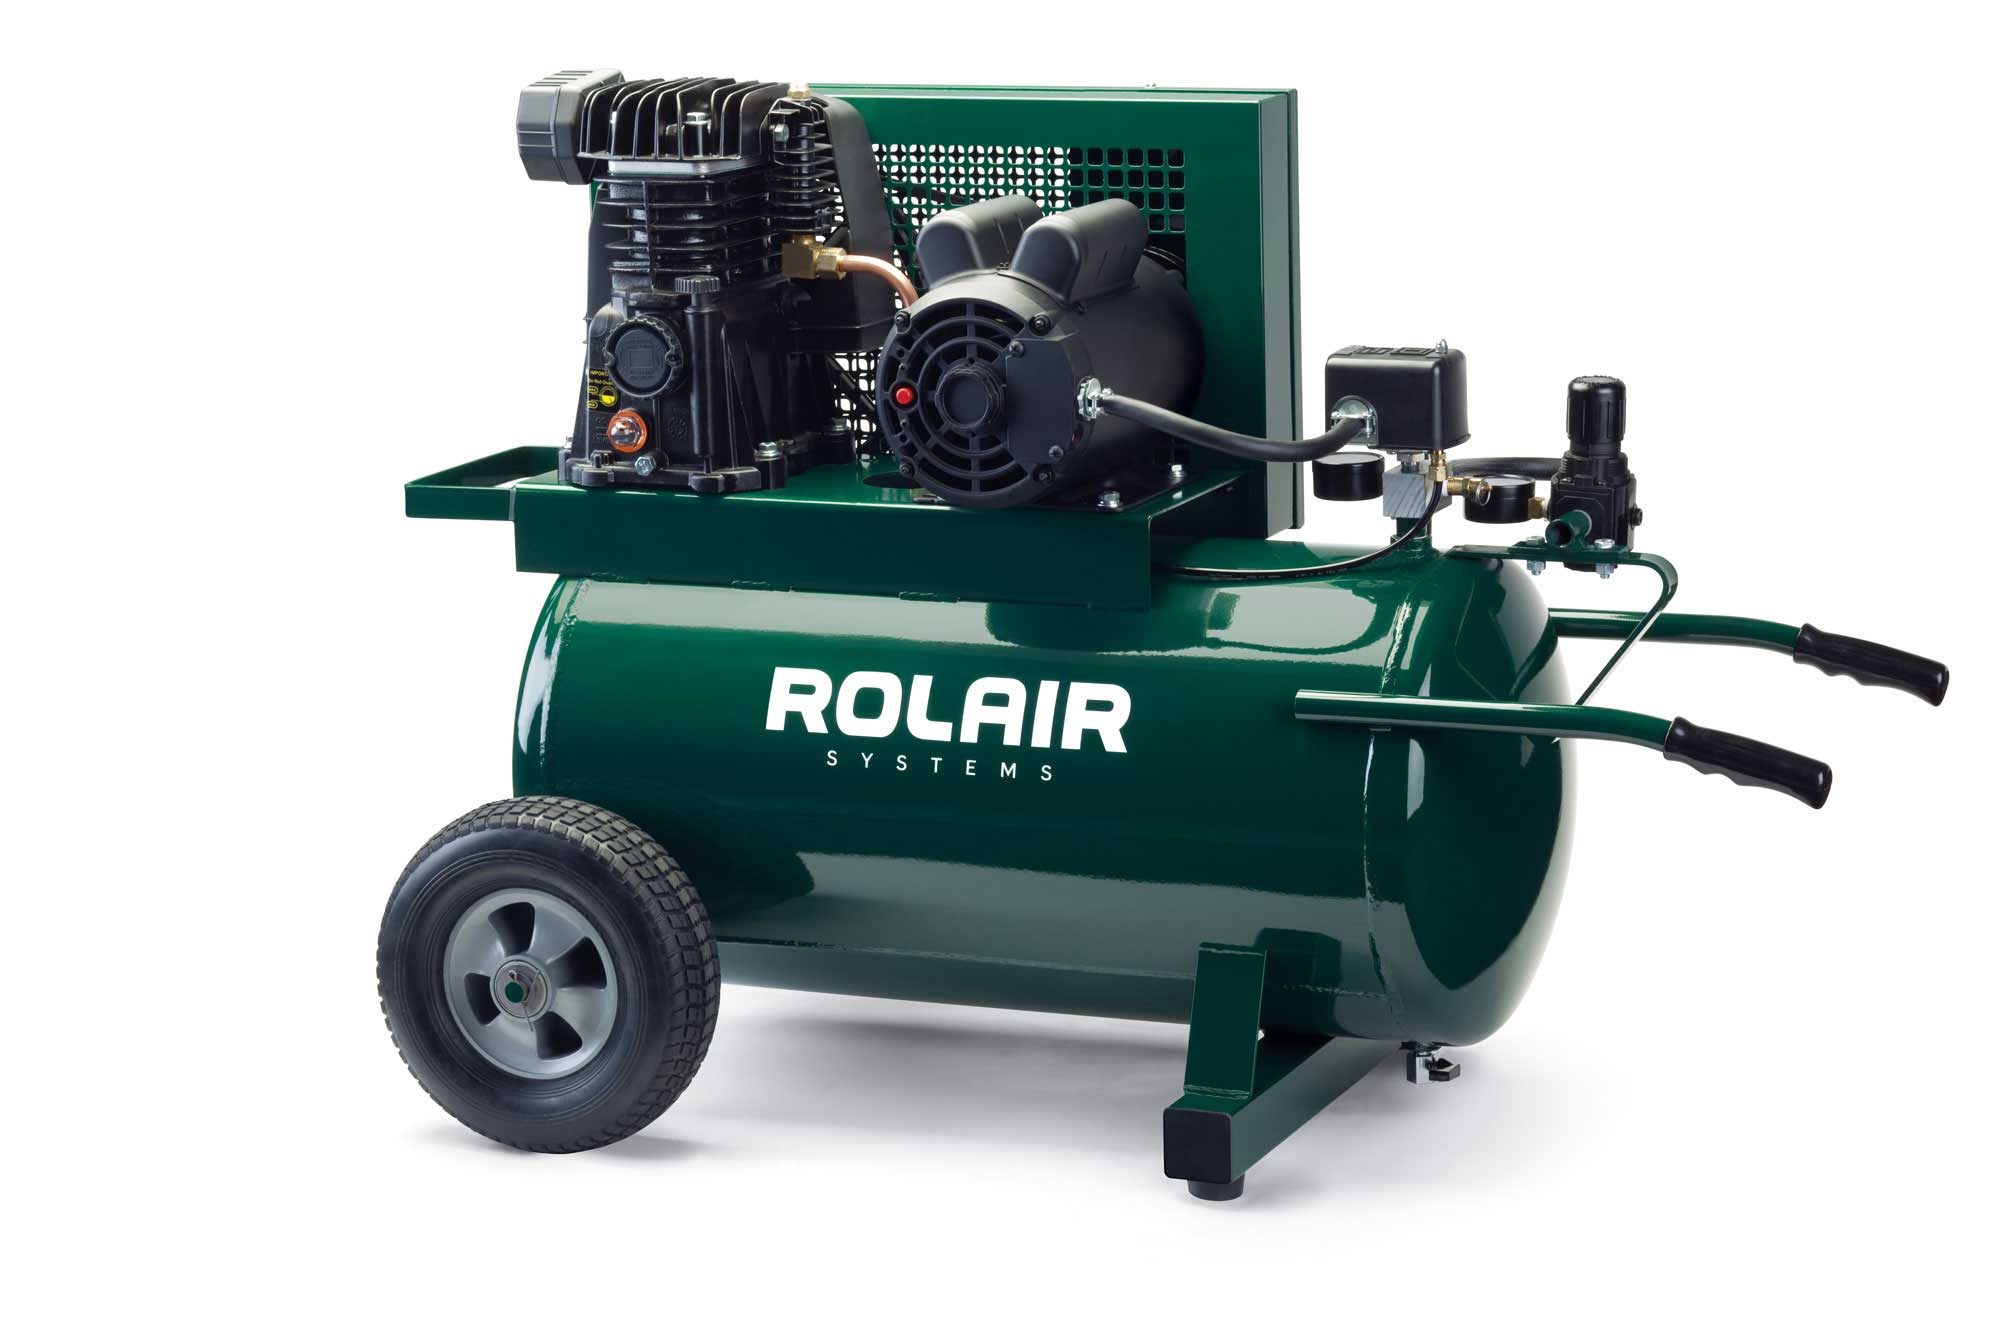 Rolair 1.5 HP 20 Gallon Electric Portable Air Compressor 5520MK103A